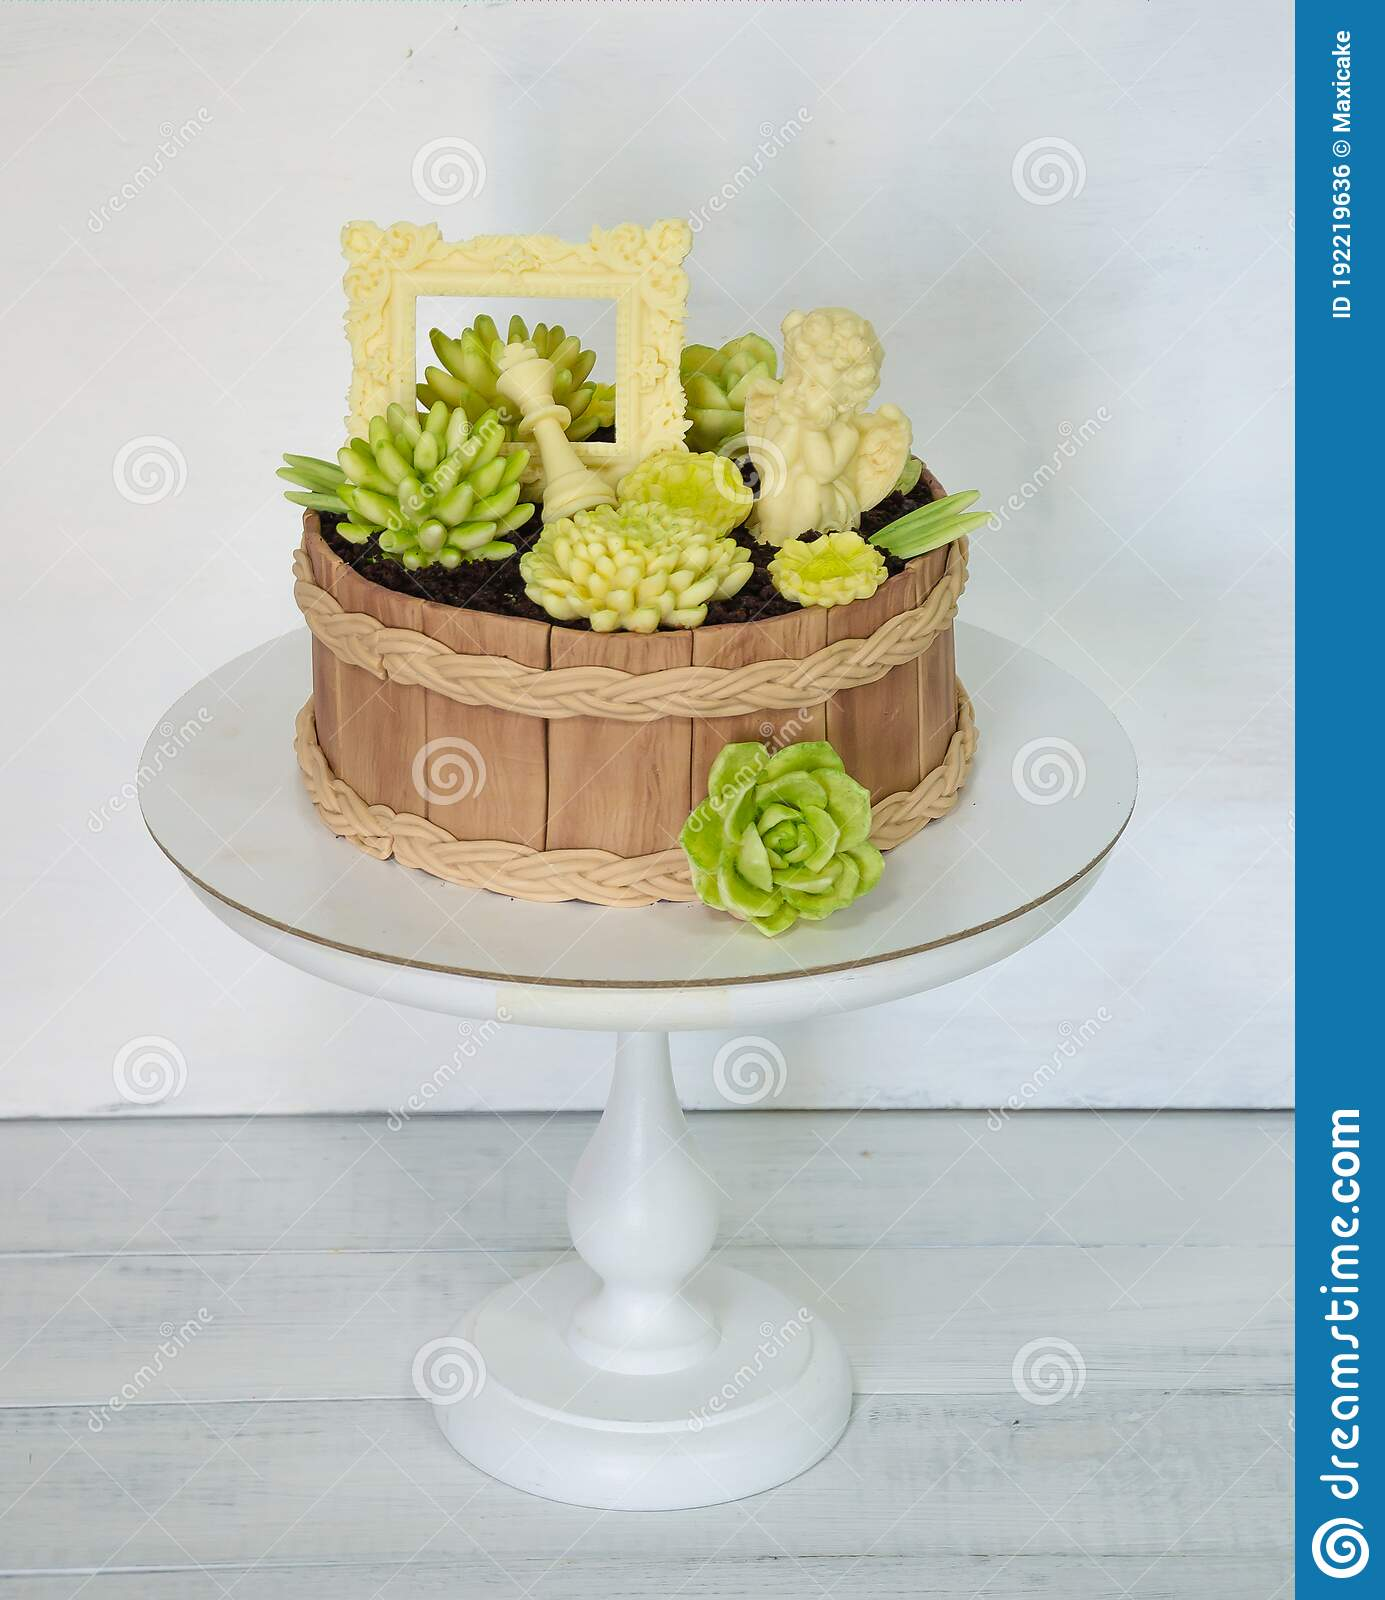 Beautiful Extra Chocolate Cake With Succulents And An Angel Stock Photo Image Of Succulent Wedding 192219636